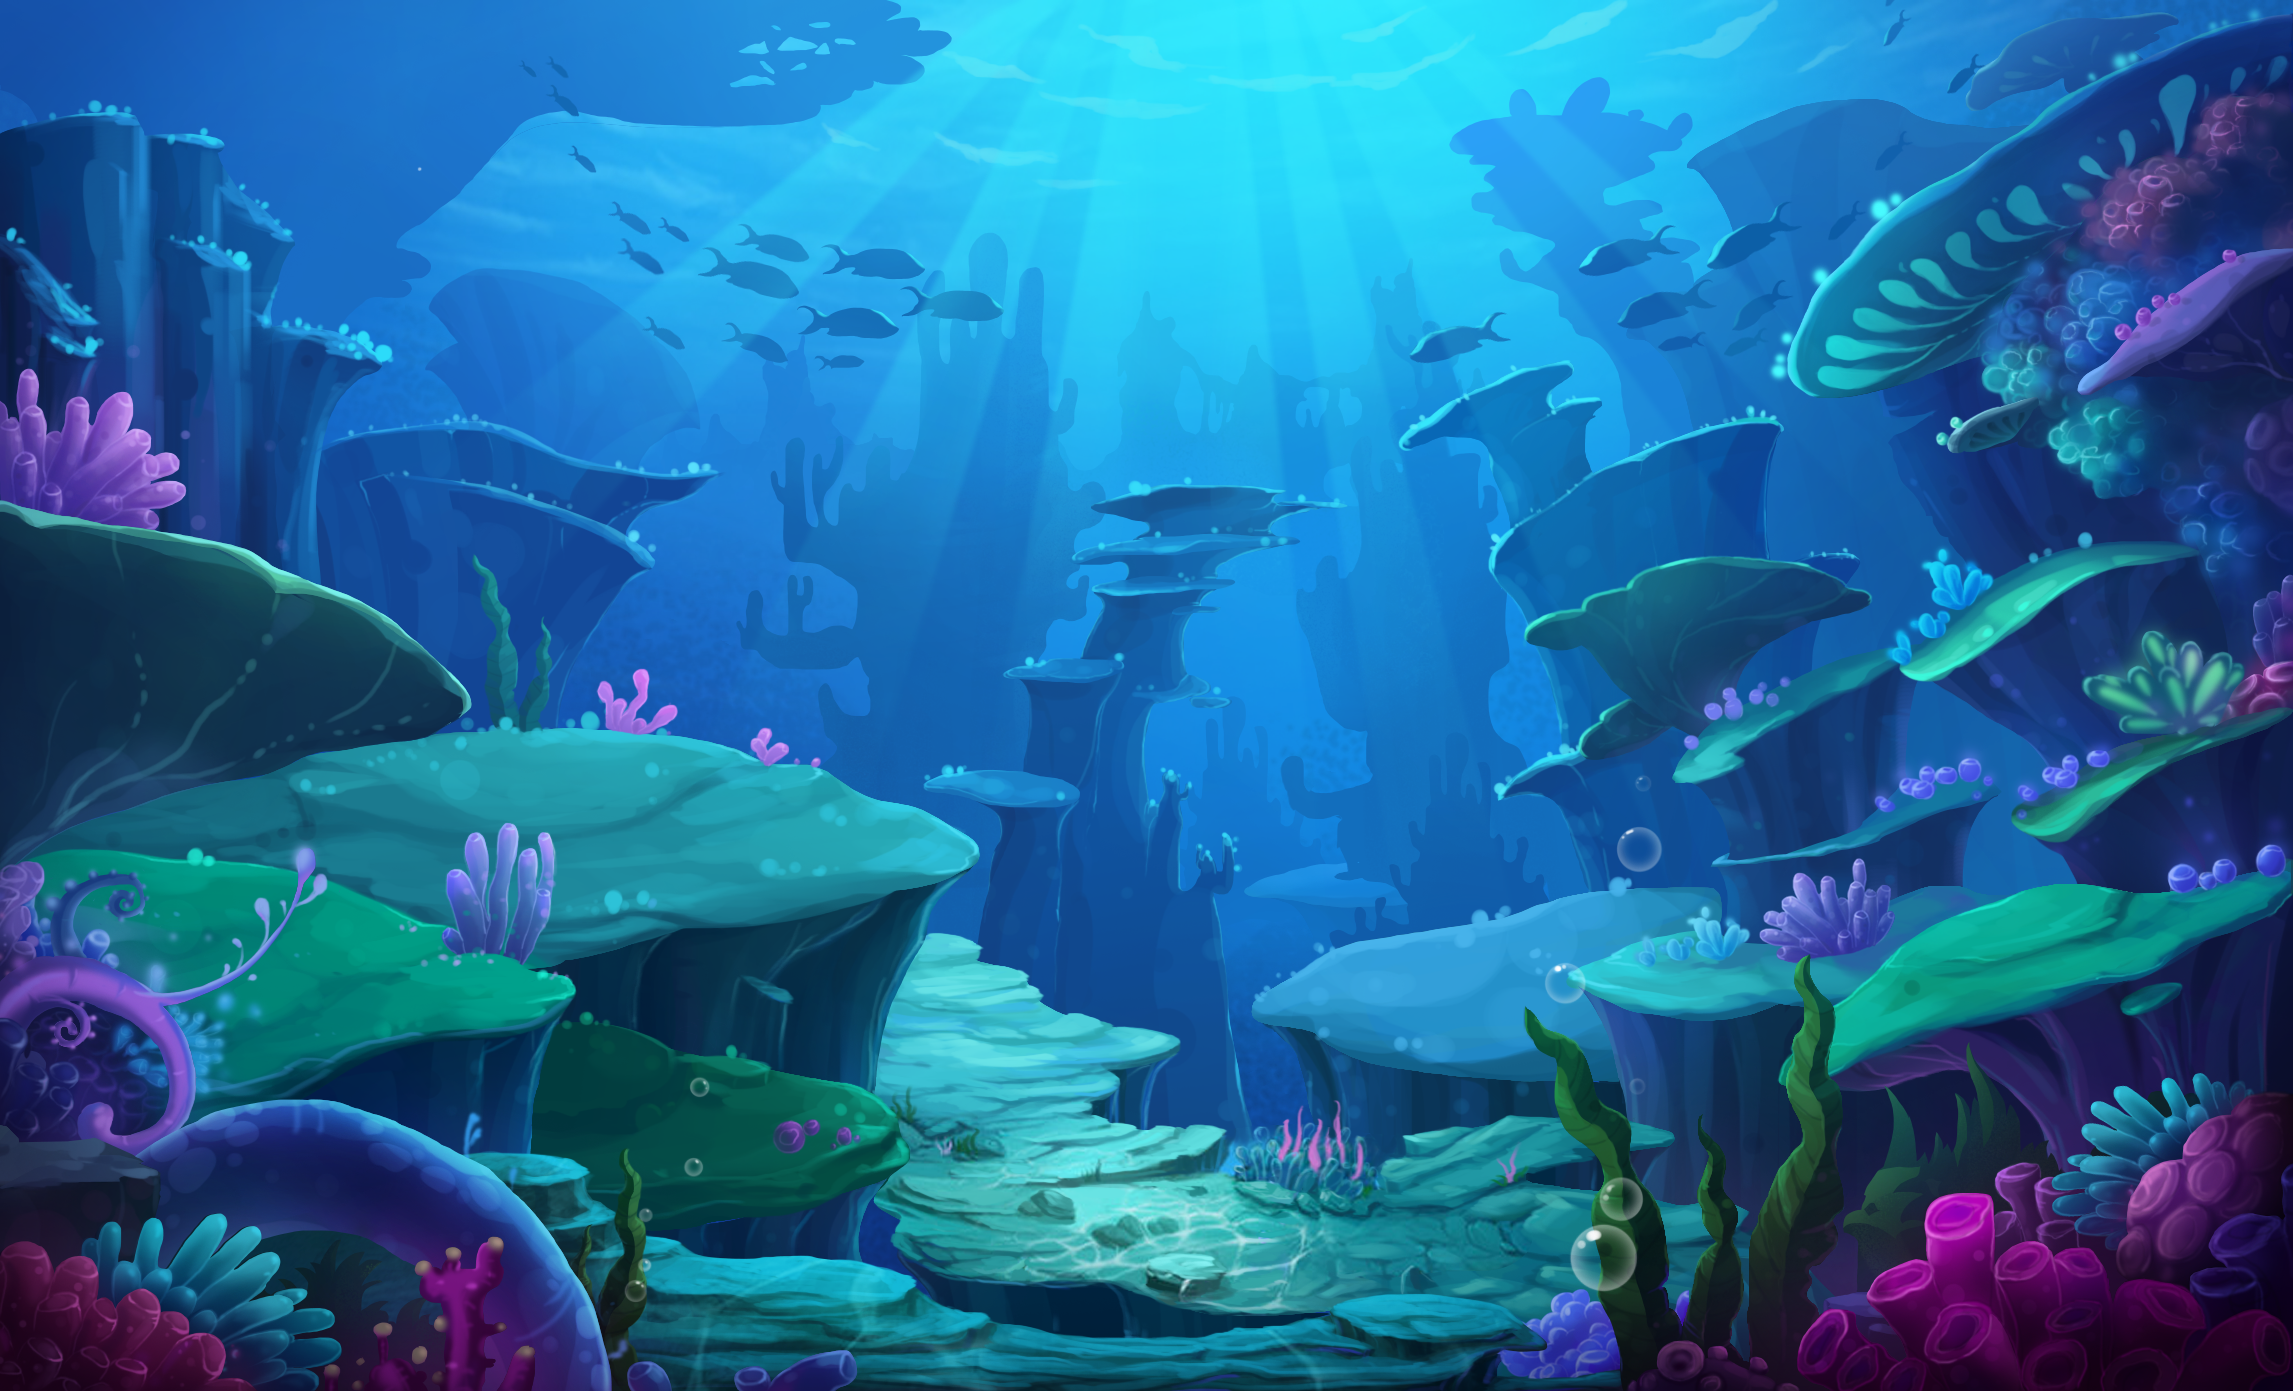 Pin By Fatbana On 55555 Environment Concept Art Underwater Art Underwater Painting